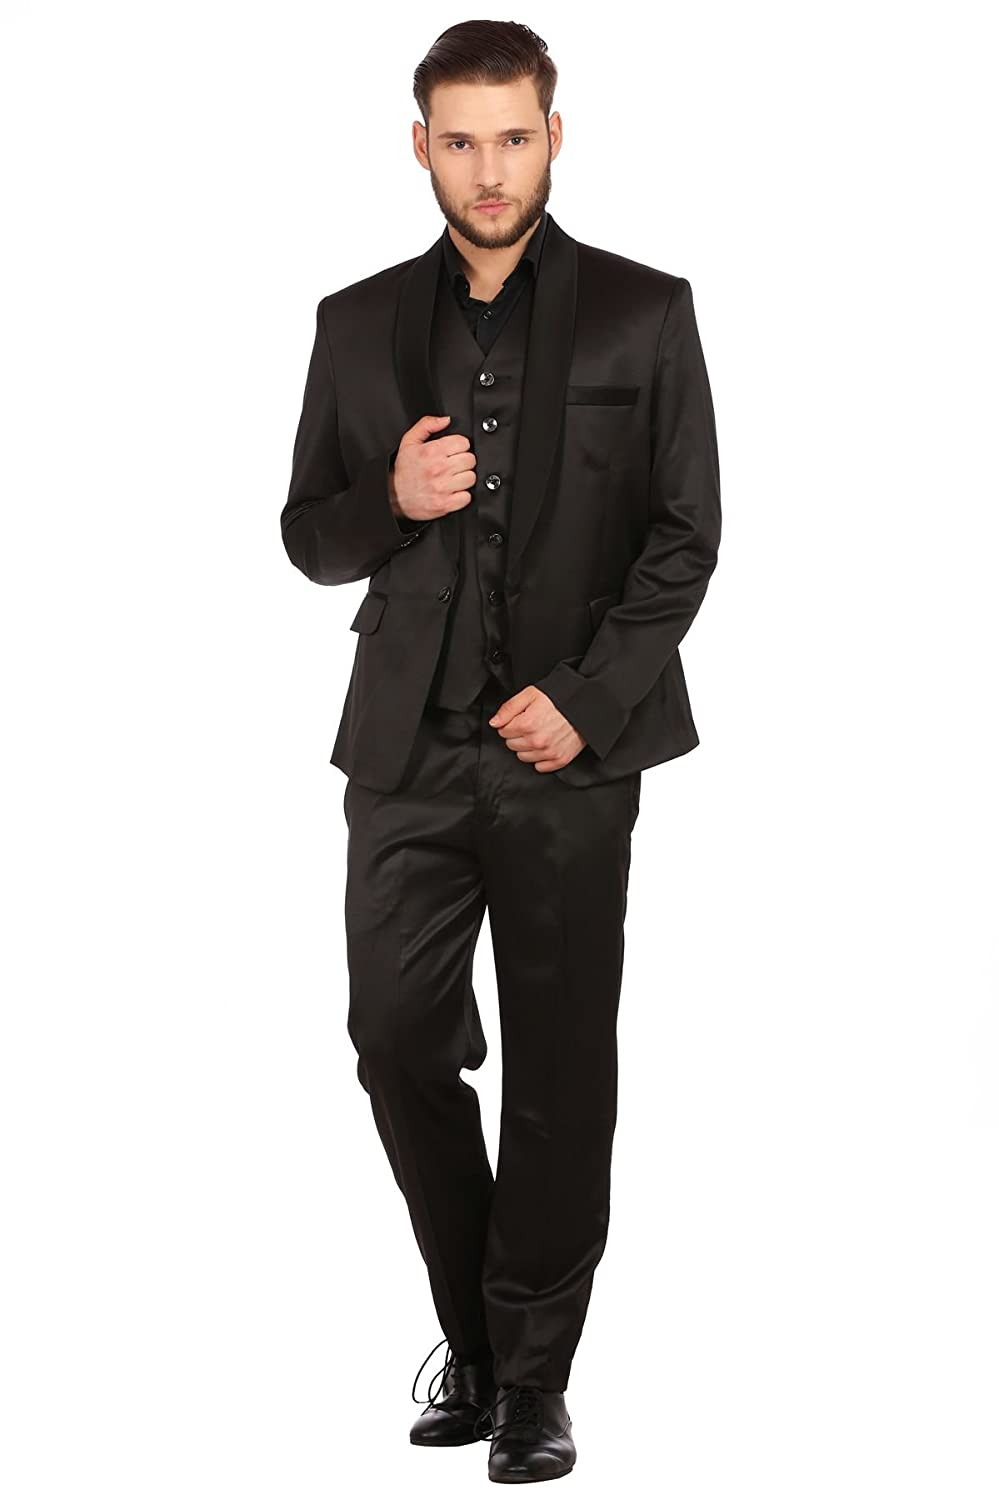 Wintage Men's Poly Blend Notch Lapel Tuxedo 3Pc Suit: Black, 4X-Large xxblacktux3pcs50